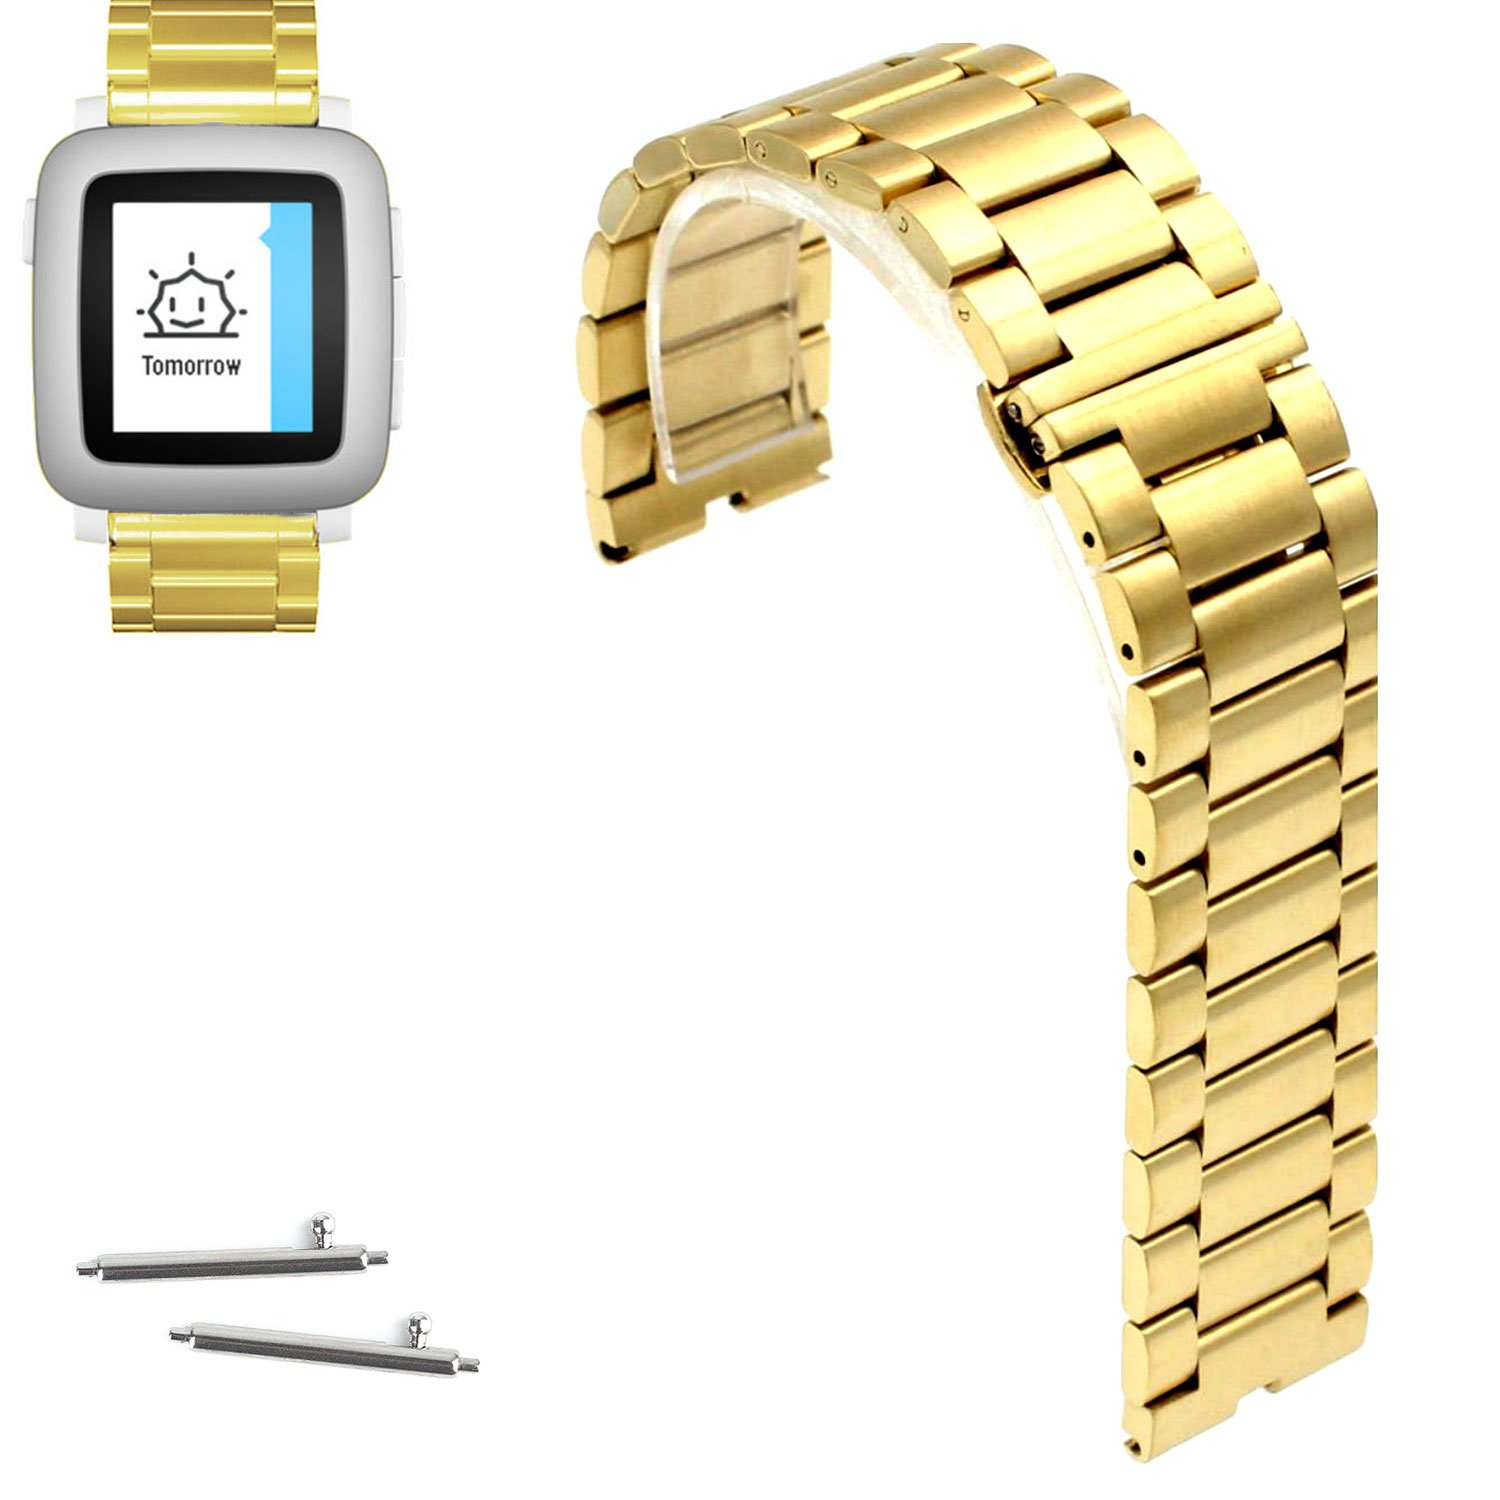 Amazon.com: 22mm Stainless Steel Butterfly Buckle Watch Band ...